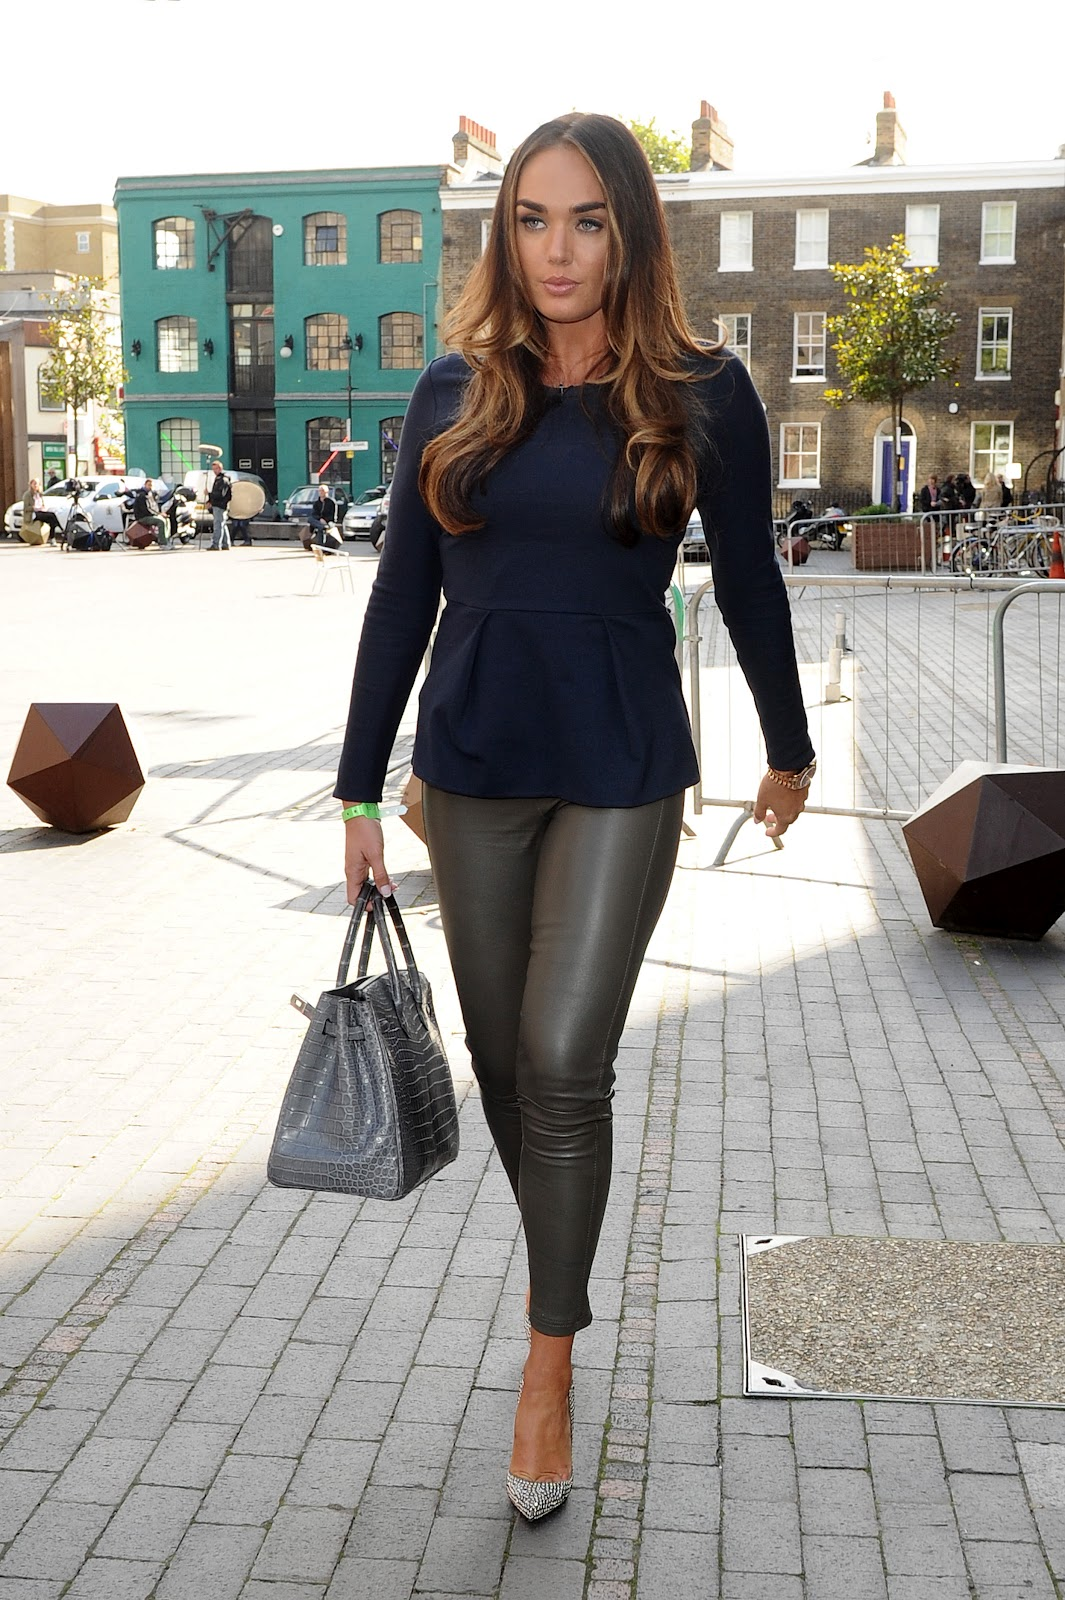 Tamara ecclestone leather pants tamara ecclestone leather dress tamara -  Tamara Ecclestone Wearing Skin Tiht Pants